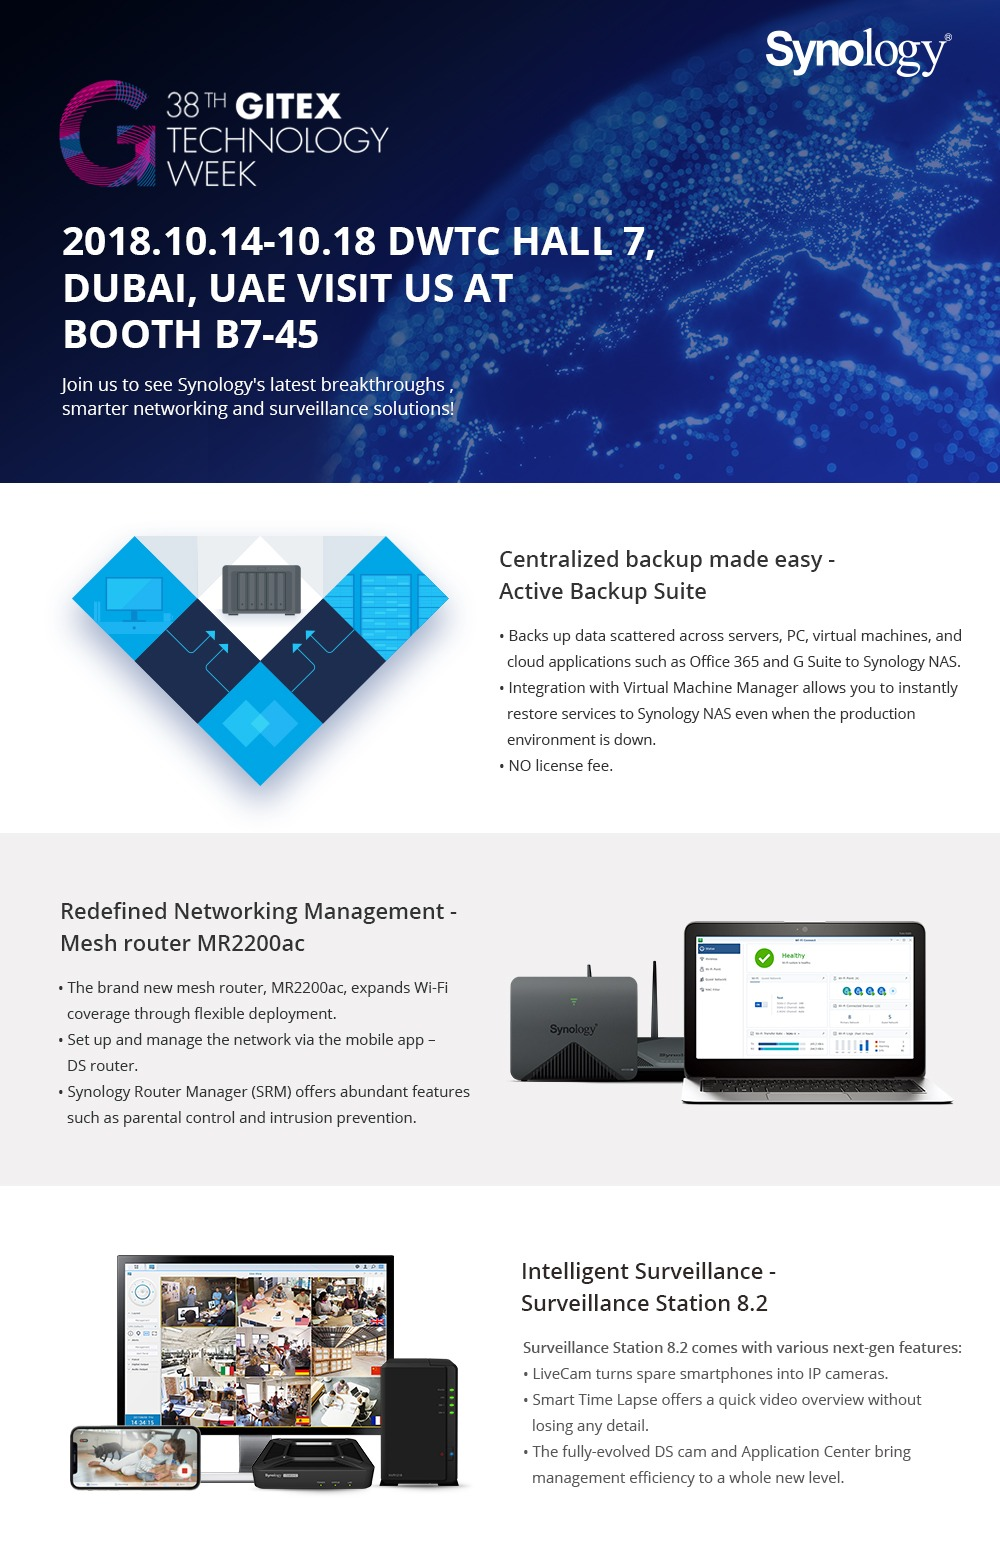 Synology GITEX 2018 Invitation